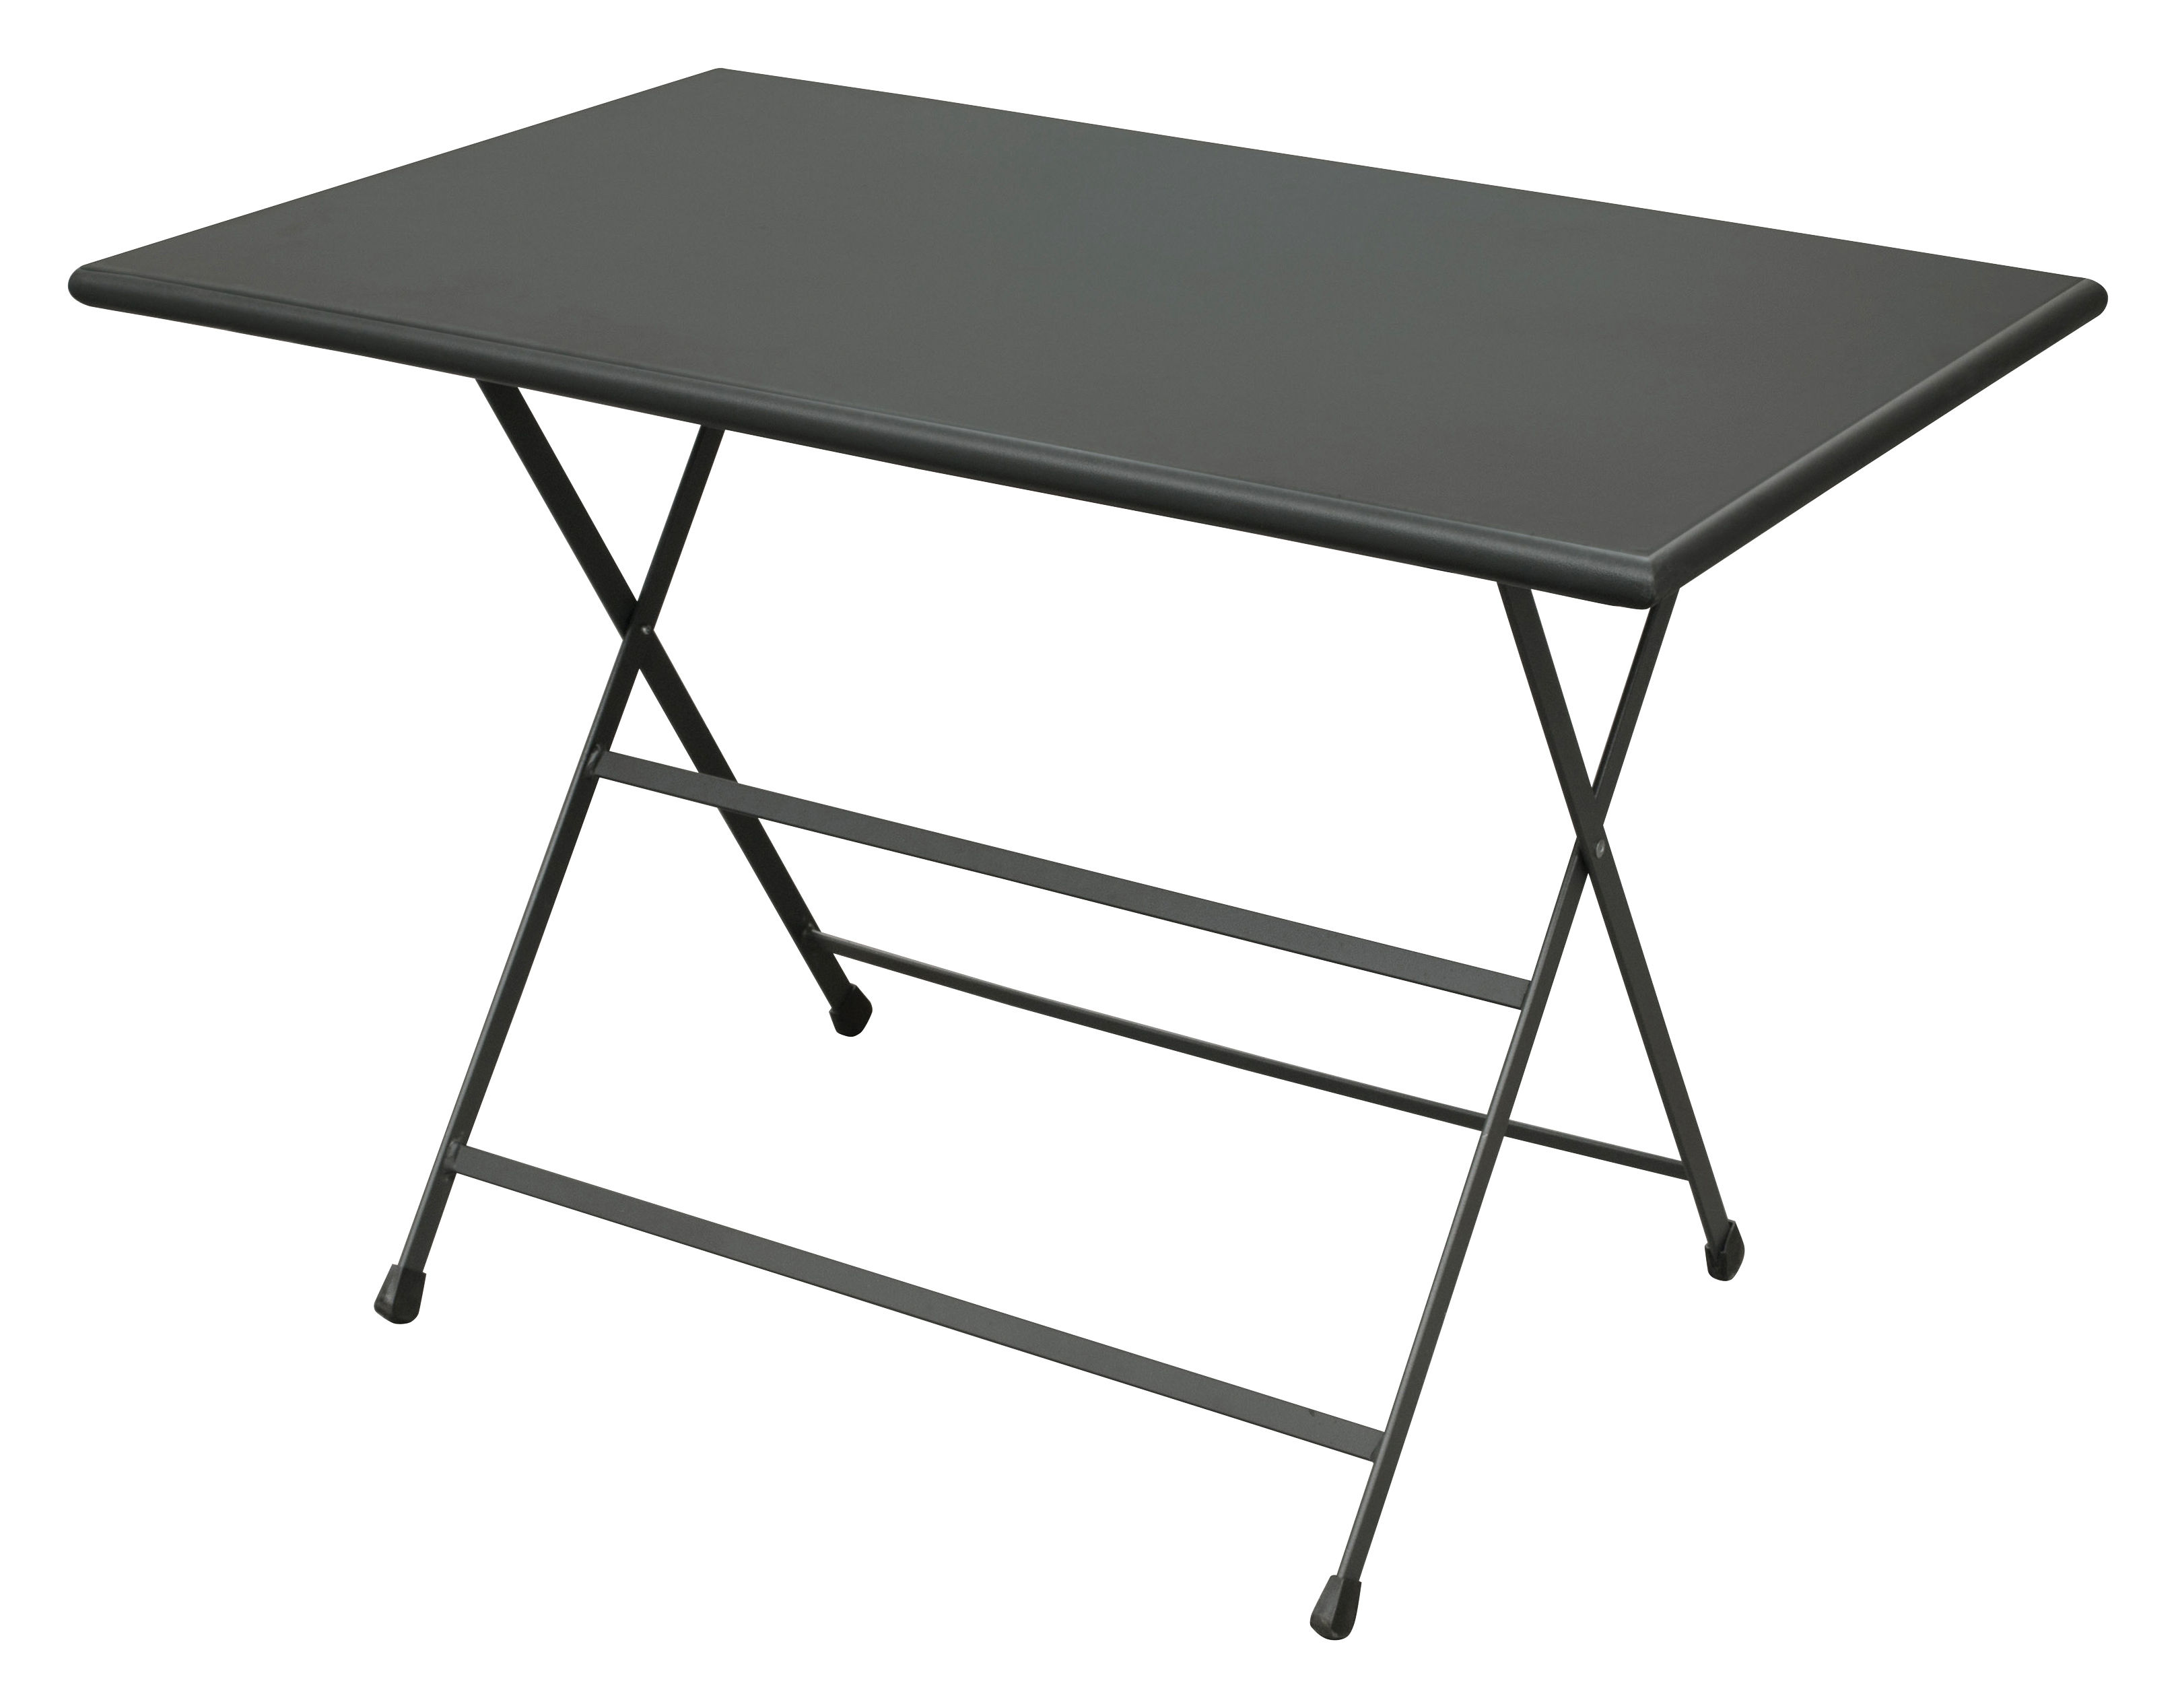 Table Pliante Exterieur Table Pliante Arc En Ciel 110 X 70 Cm Emu